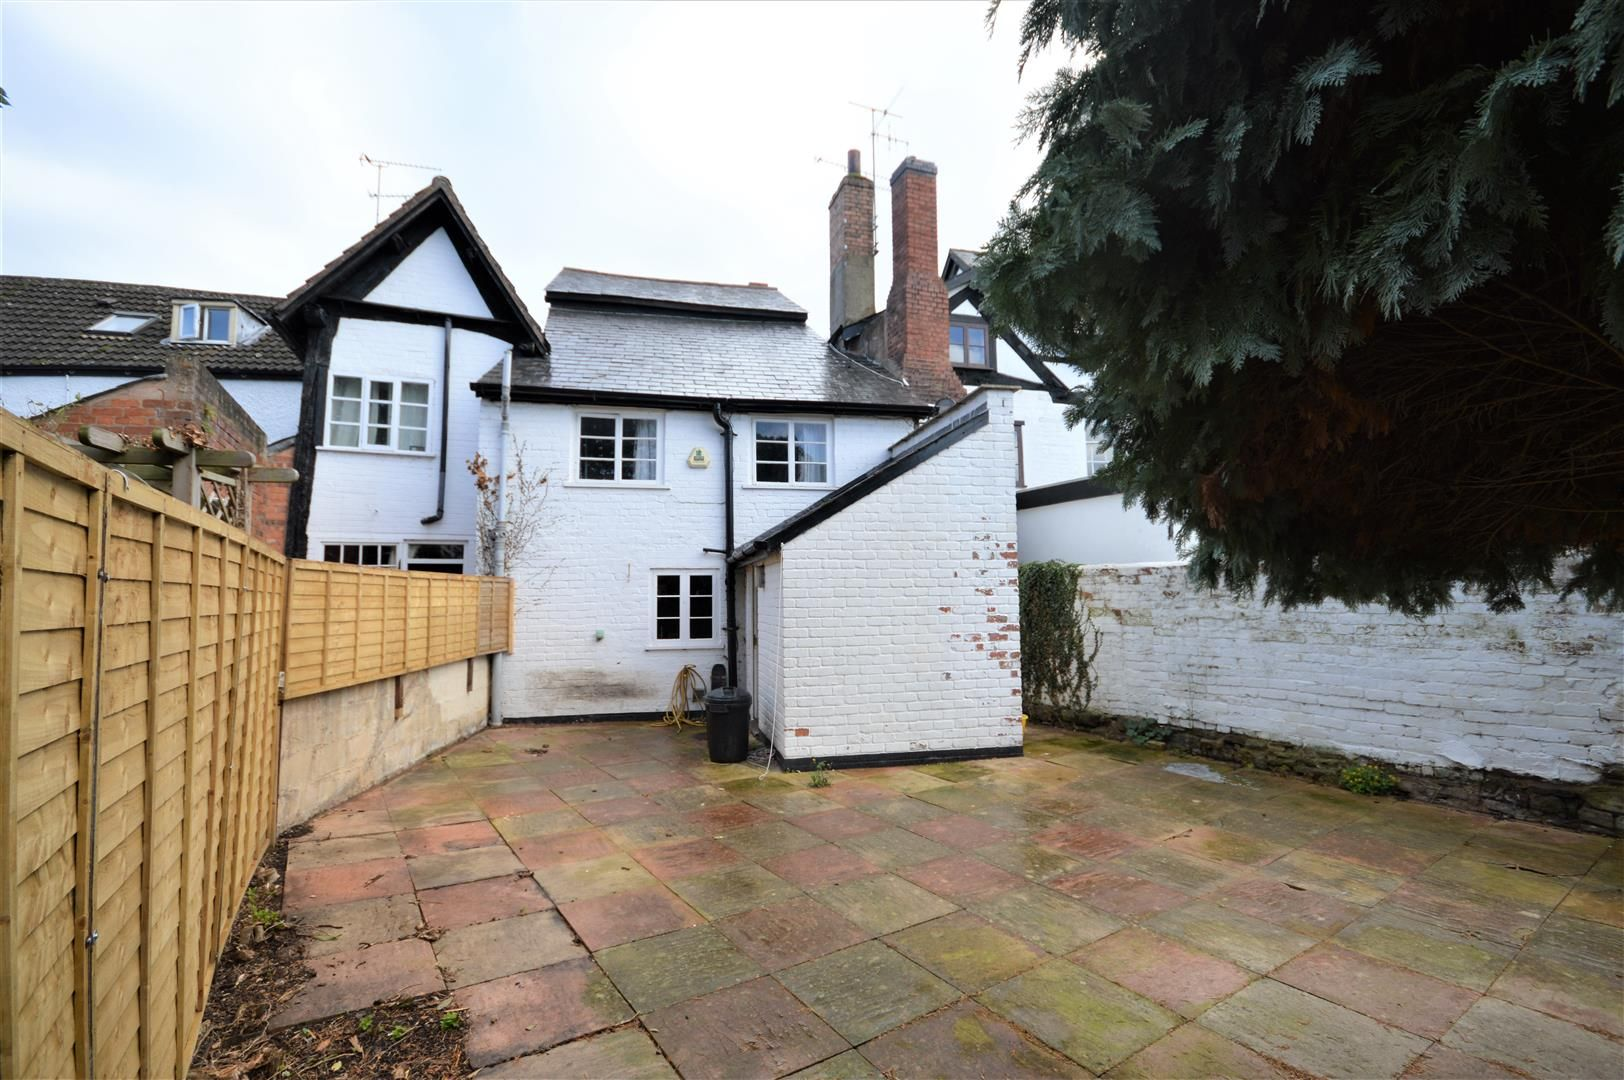 4 bed terraced for sale in Leominster 10